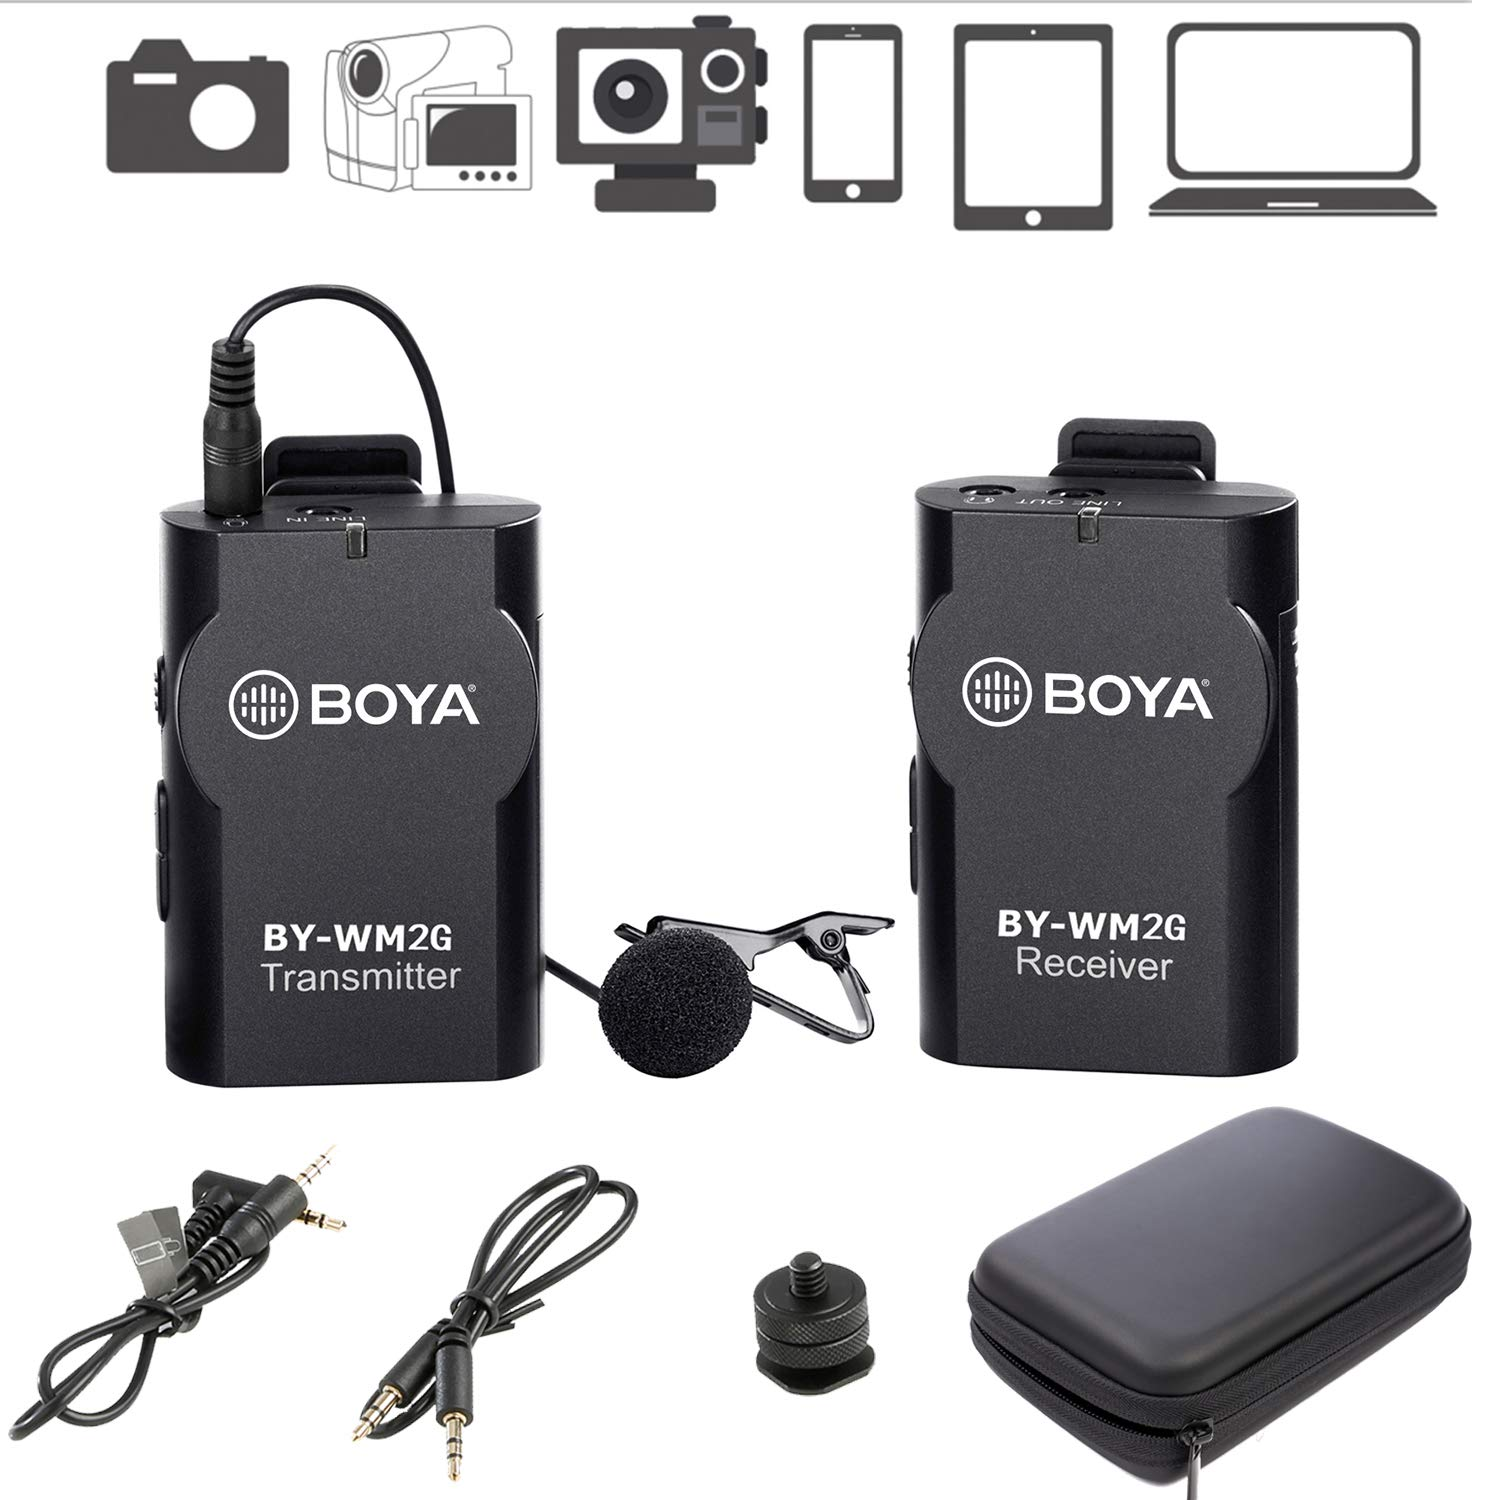 BOYA BY-WM2G Wireless Lavalier Microphone System Compatible with iPhoneX 8 8 Plus 7 6 Smartphone,Canon 6D 600D Nikon D800 D3300 Sony A7 A9 DSLR GoPro Hero4 Hero3 Hero3+ Action Cameras by BOYA